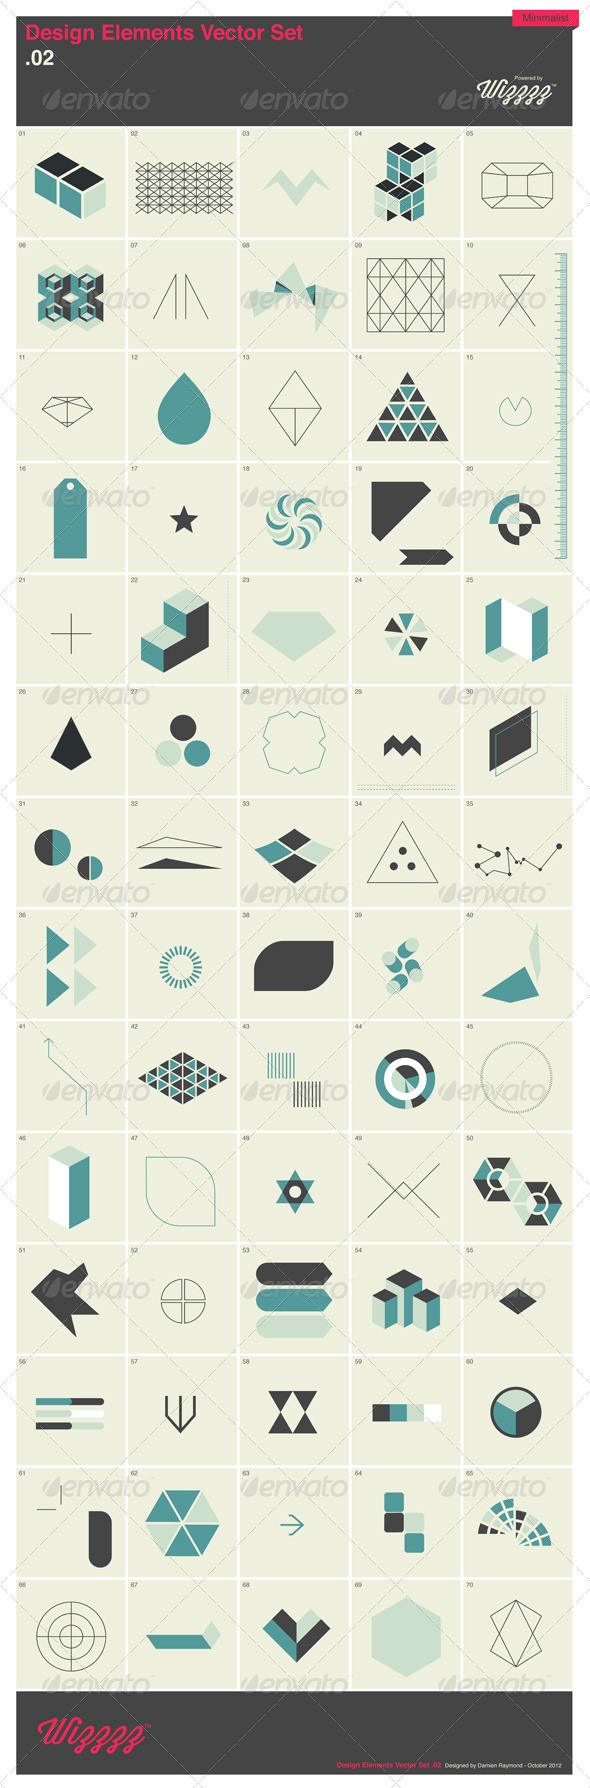 GraphicRiver 70 Design Elements Vector Set 2 3327554